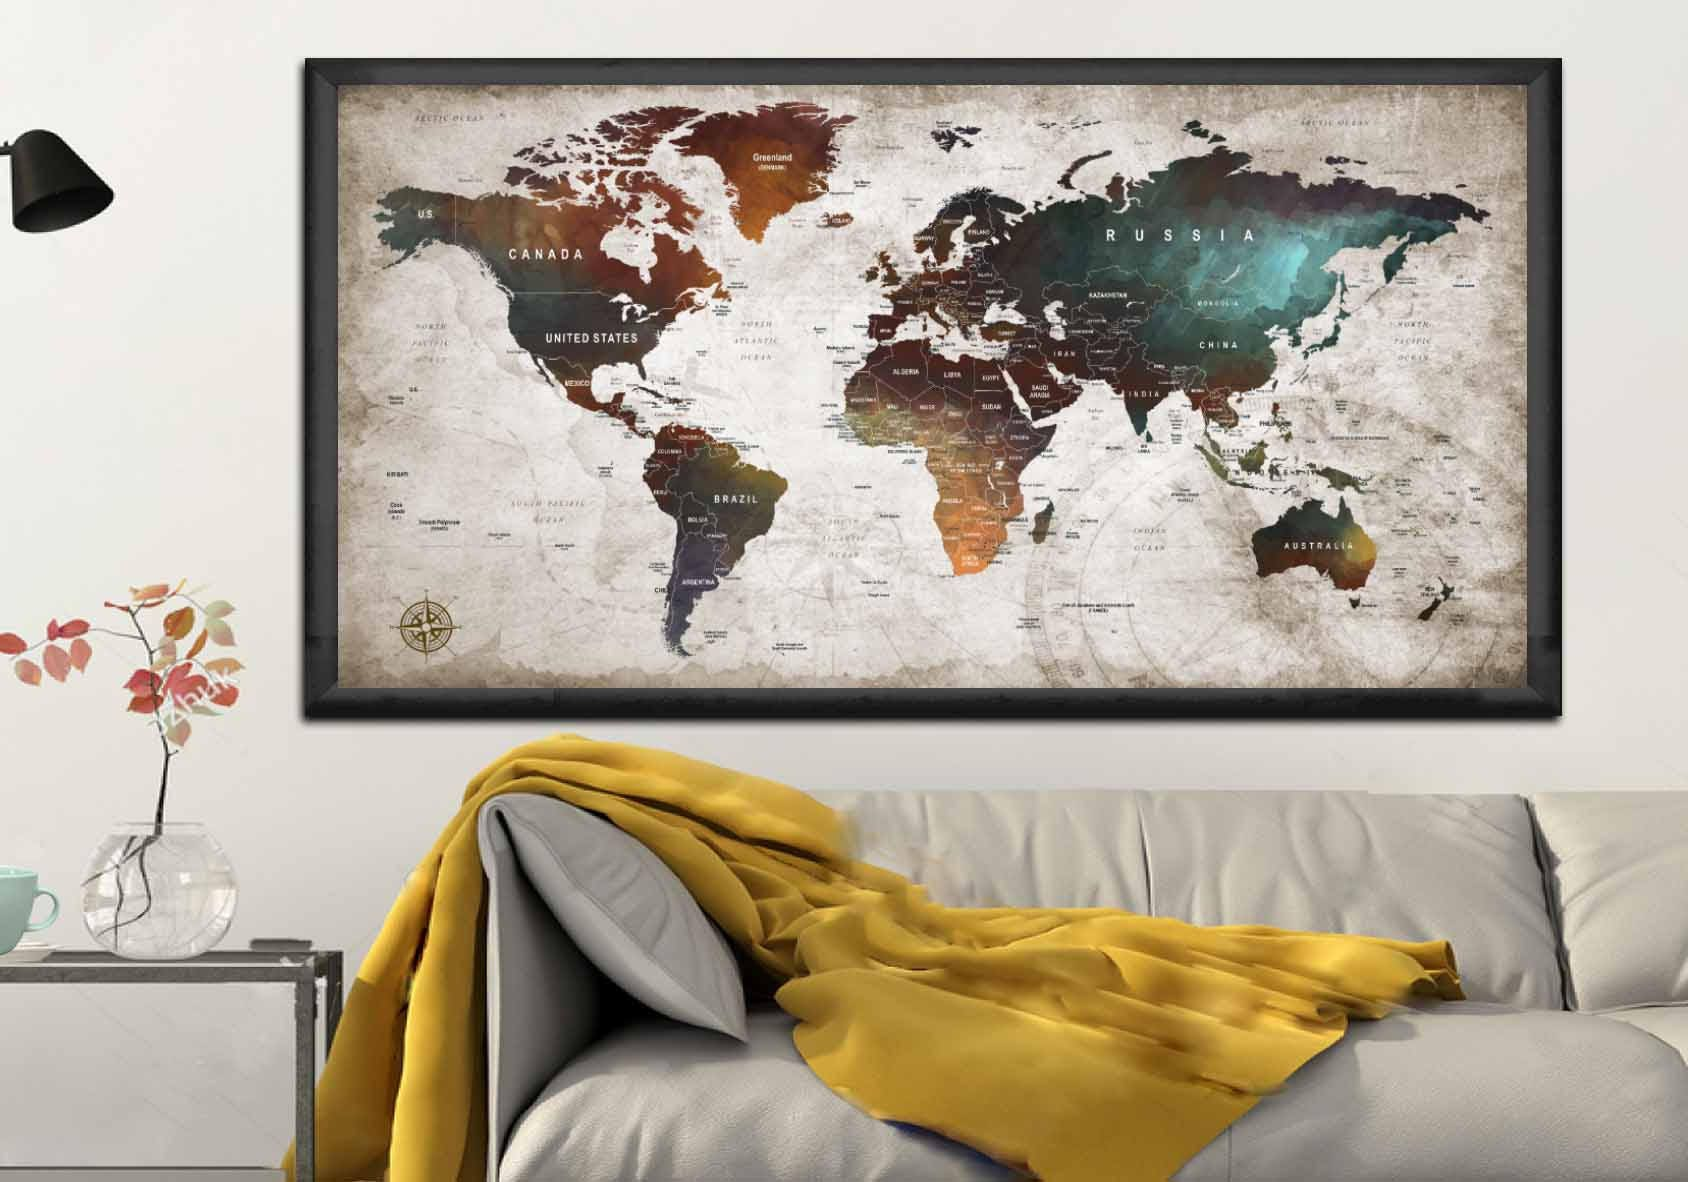 World map posterworld map decalworld map canvas panelworld map world map posterworld map decalworld map canvas panelworld map printworld map artworld map wall artpush pin map postertravel map art gumiabroncs Images